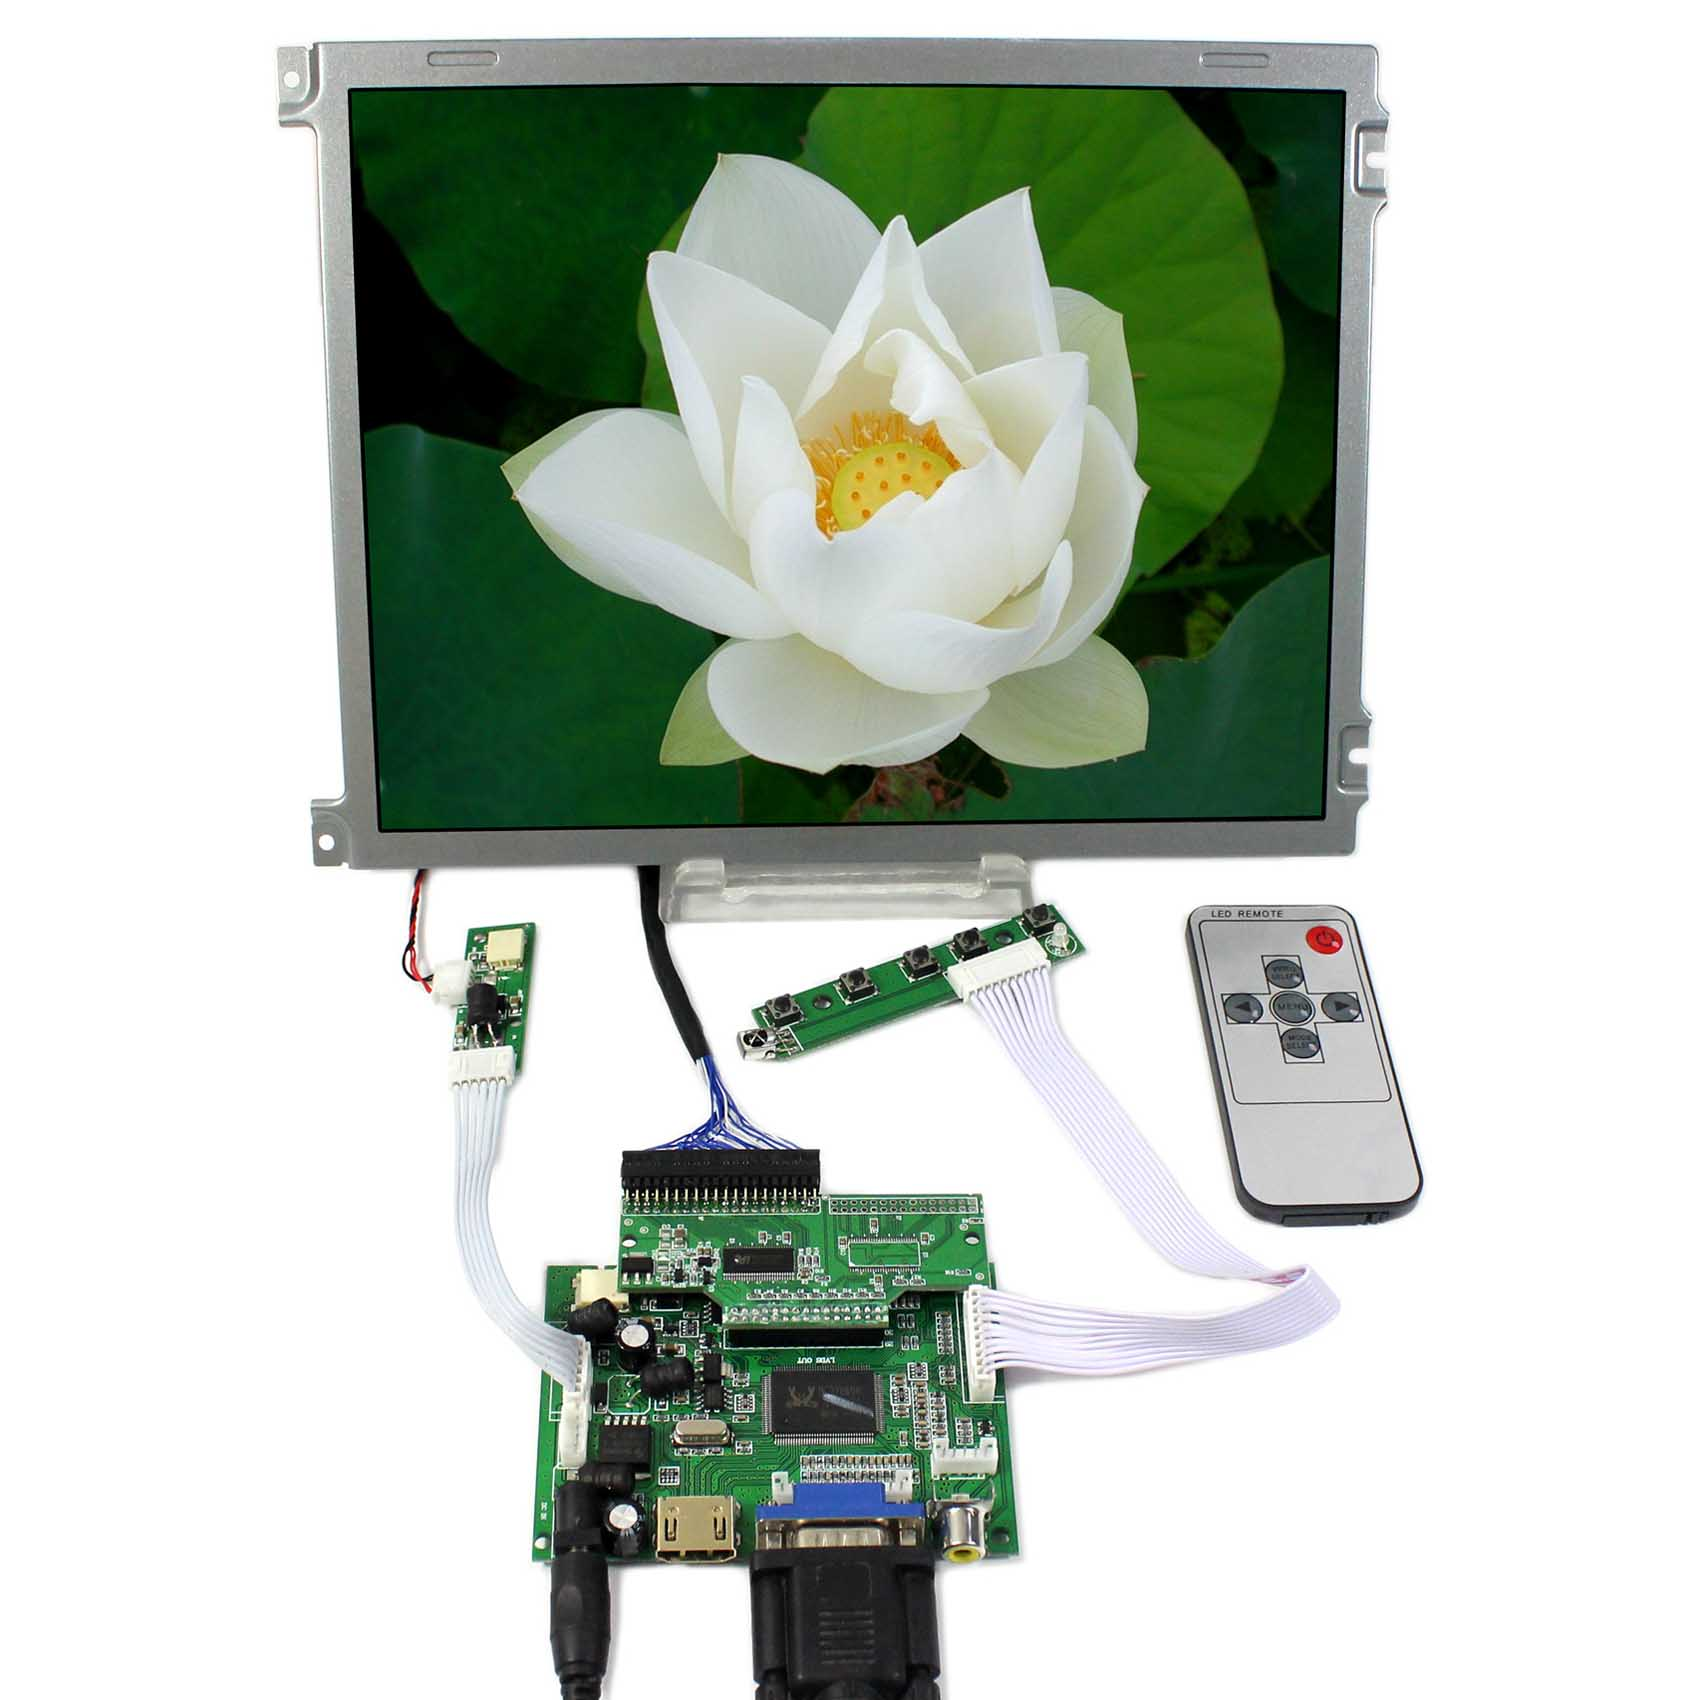 HDMI VGA 2AV LCD Controller Board AA104VH01 640x480 31pins CMOS Connector Backlight WLED 10.4inch LCD Screen vga lcd controller board rt2270c 8 4inch 640x480 aa084vc03 lcd screen